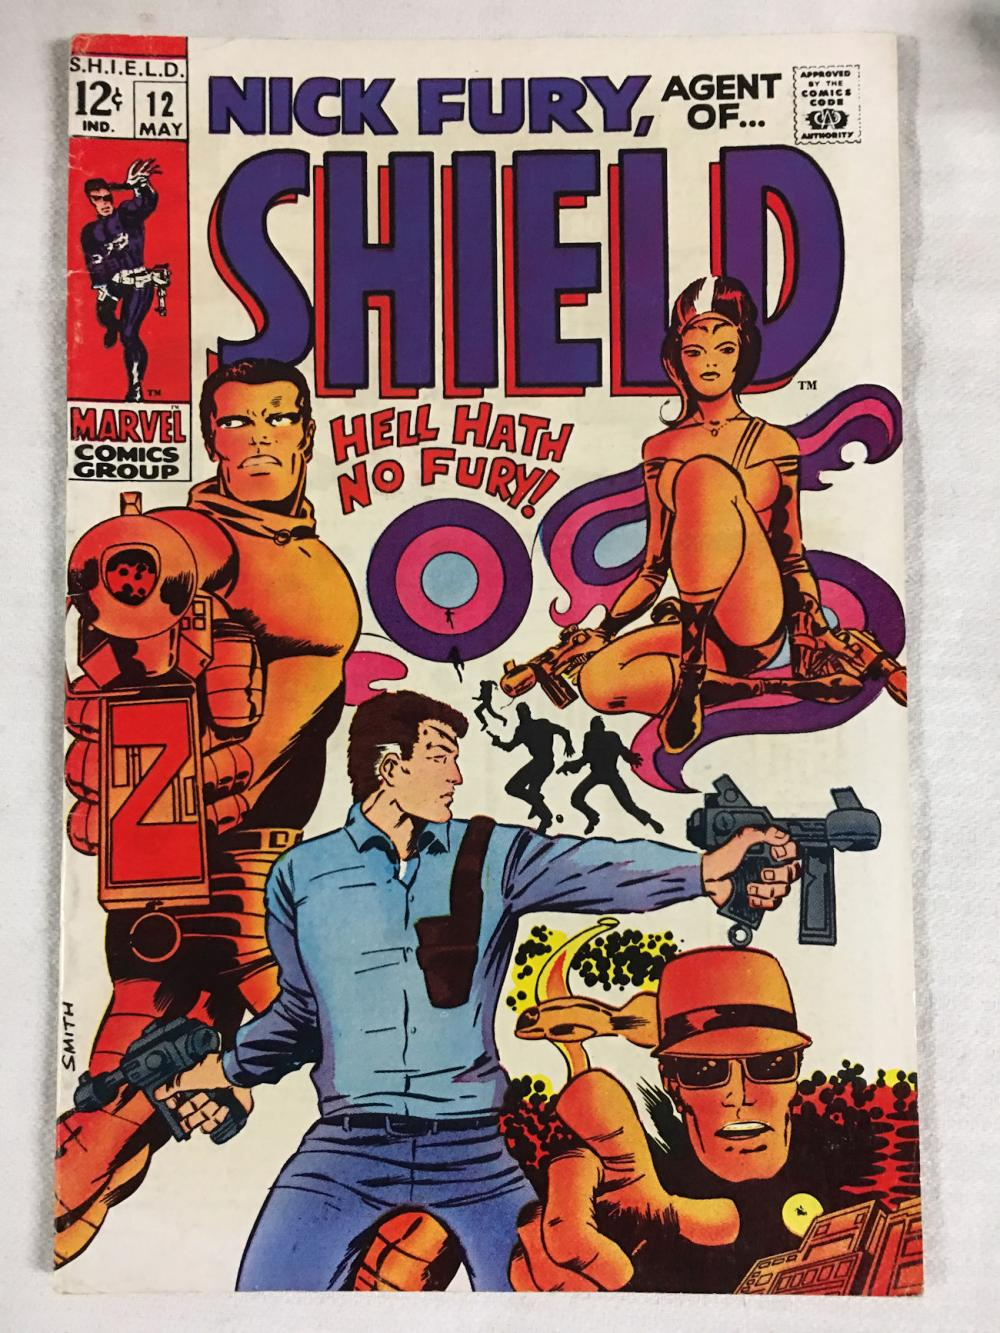 Marvel comics group agent of shield 12 may vintage